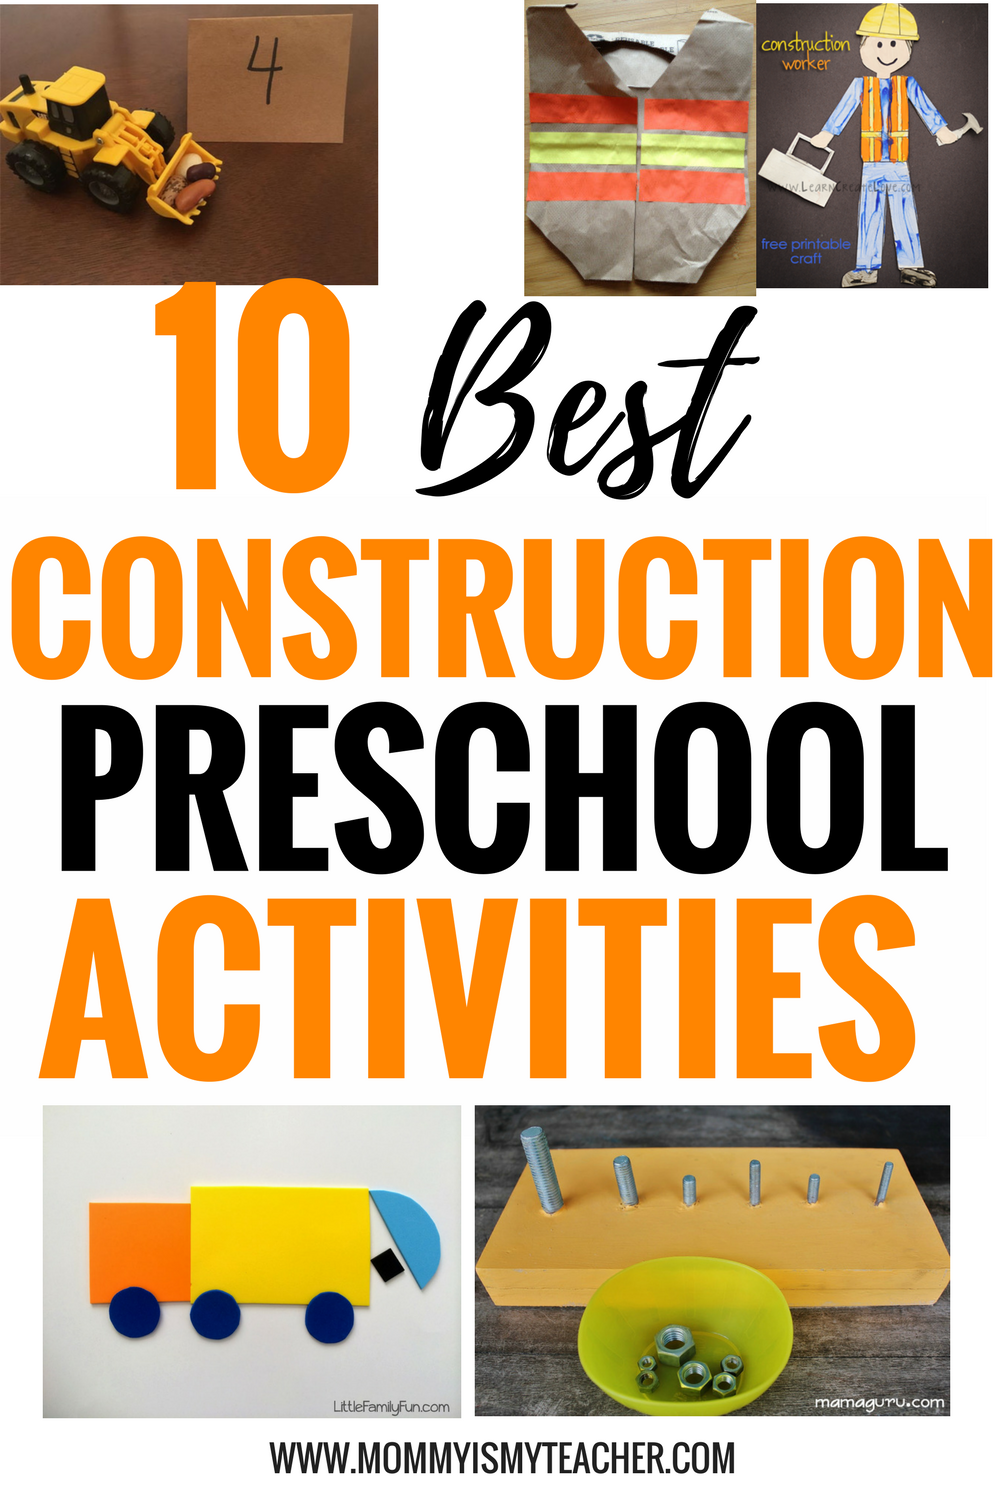 Wow, I love these construction theme preschool activities and printables! These are great for preschool activities at home and homeschool preschool ideas!